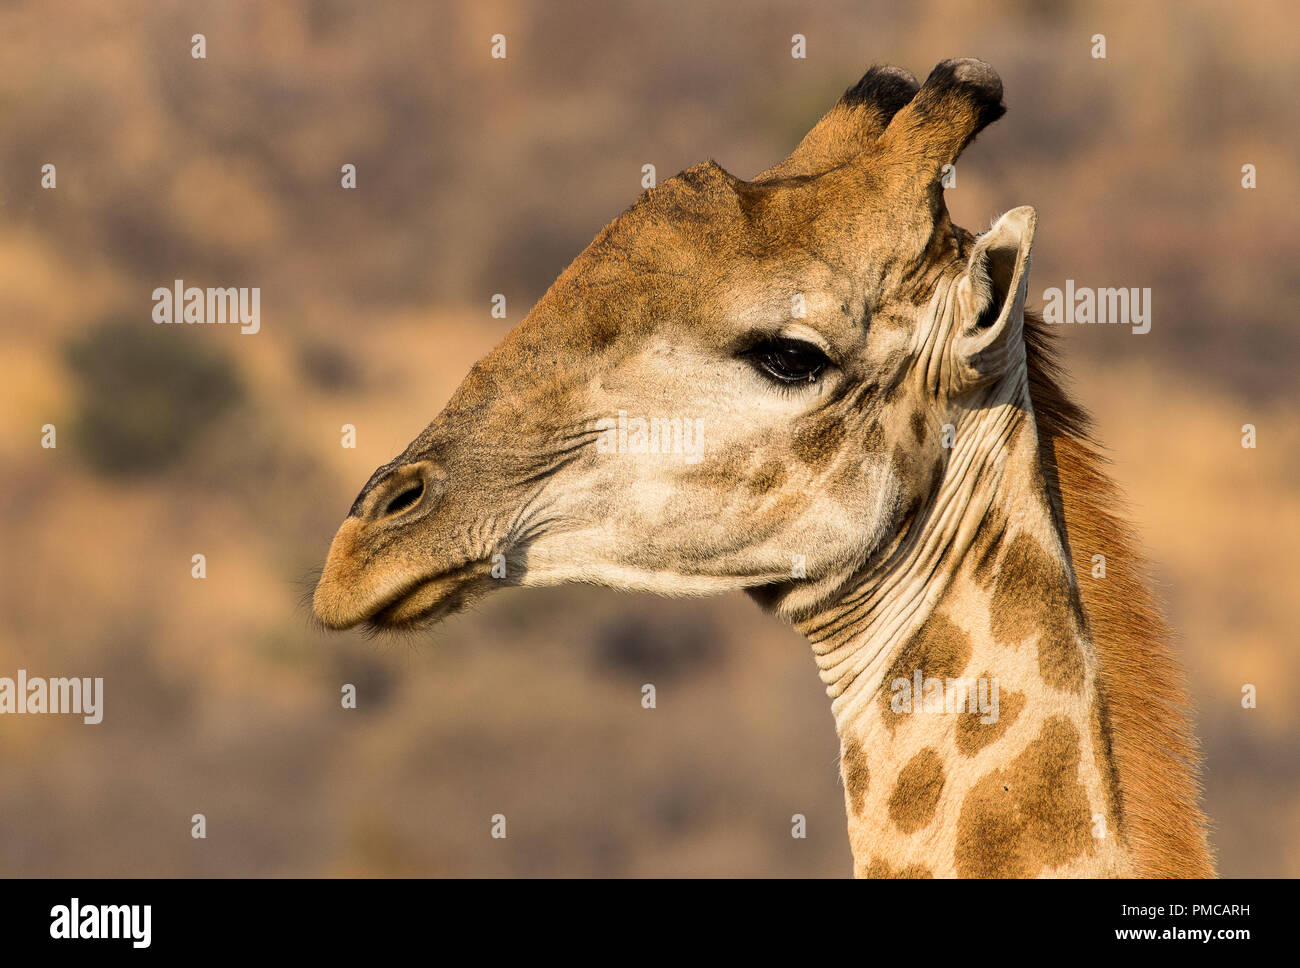 Portrait of a giraffe. Photograph taken at Pilanesberg National Park, South Africa - Stock Image